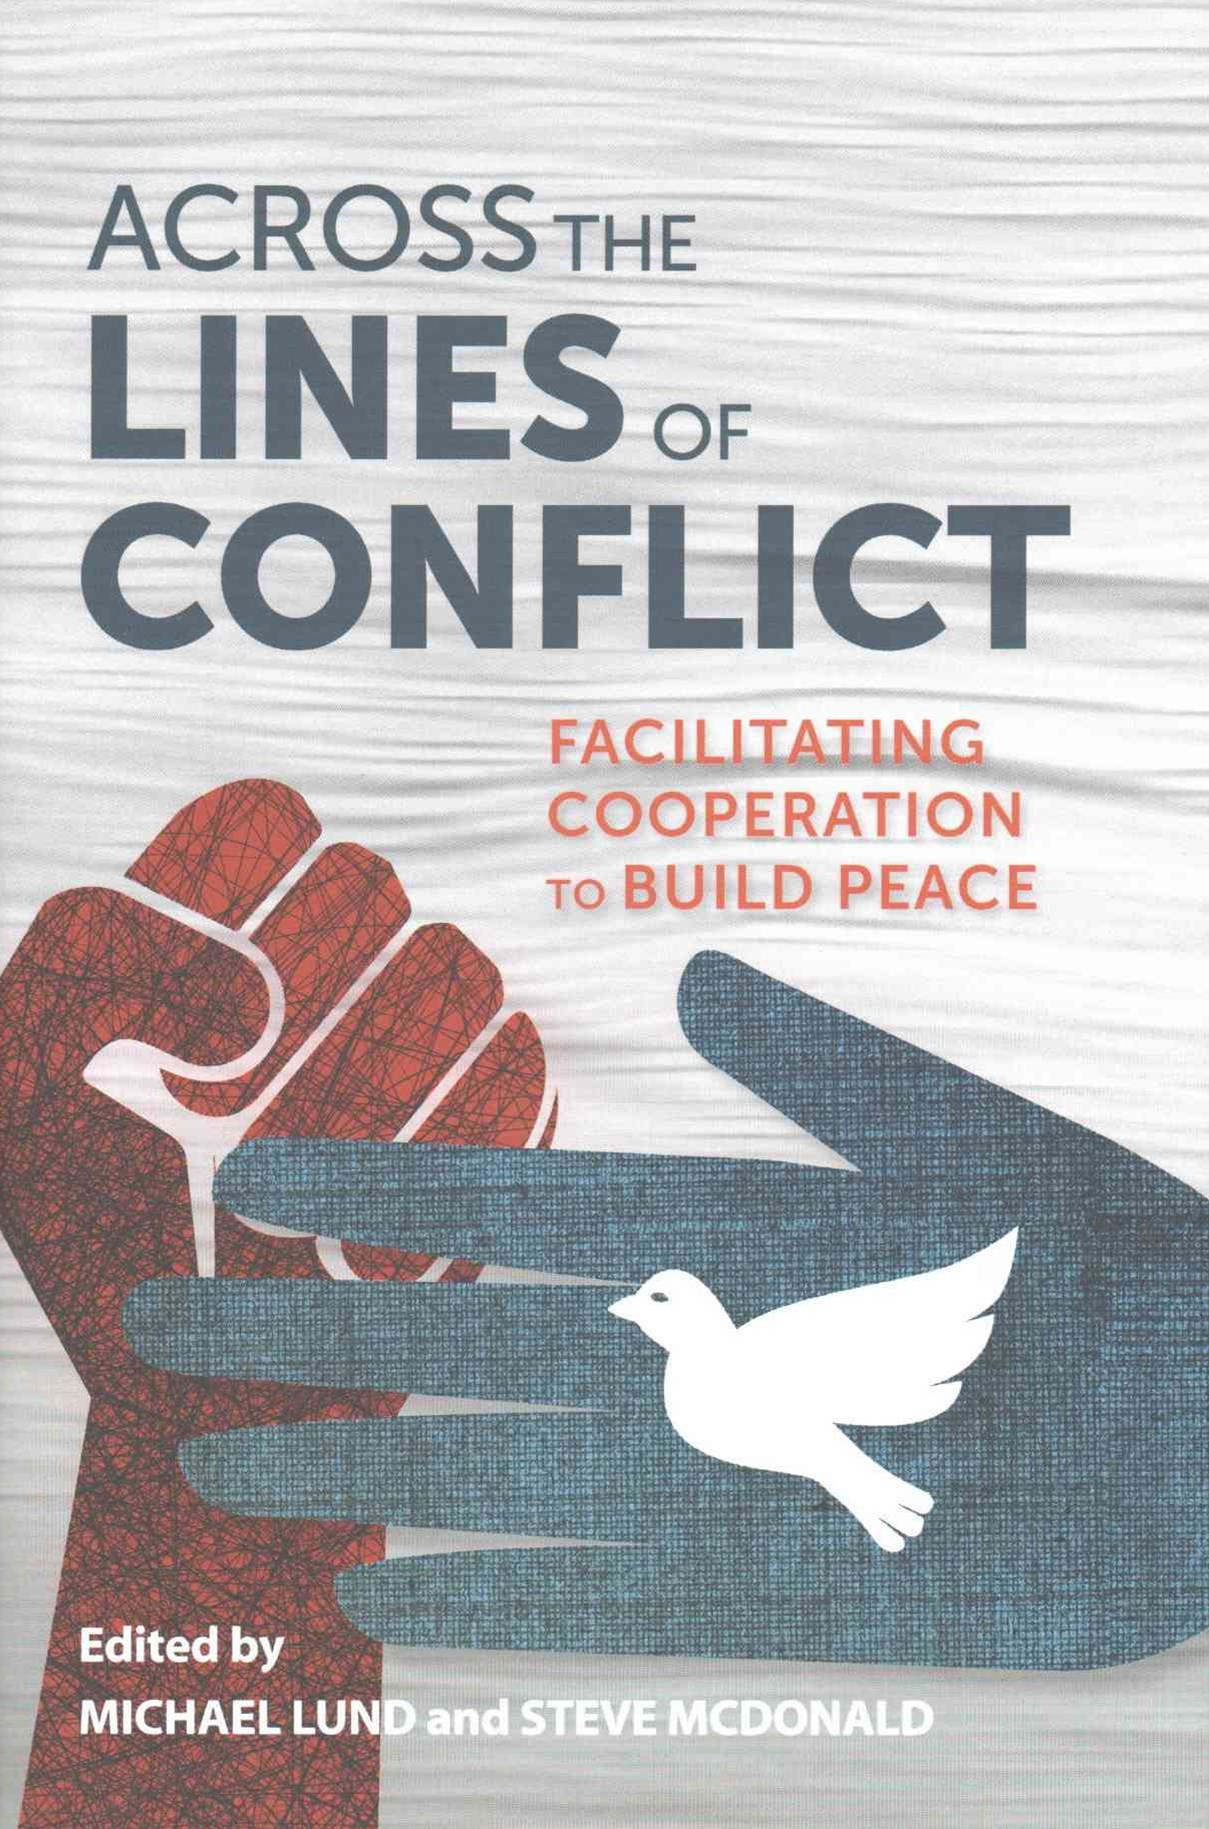 Across the Lines of Conflict